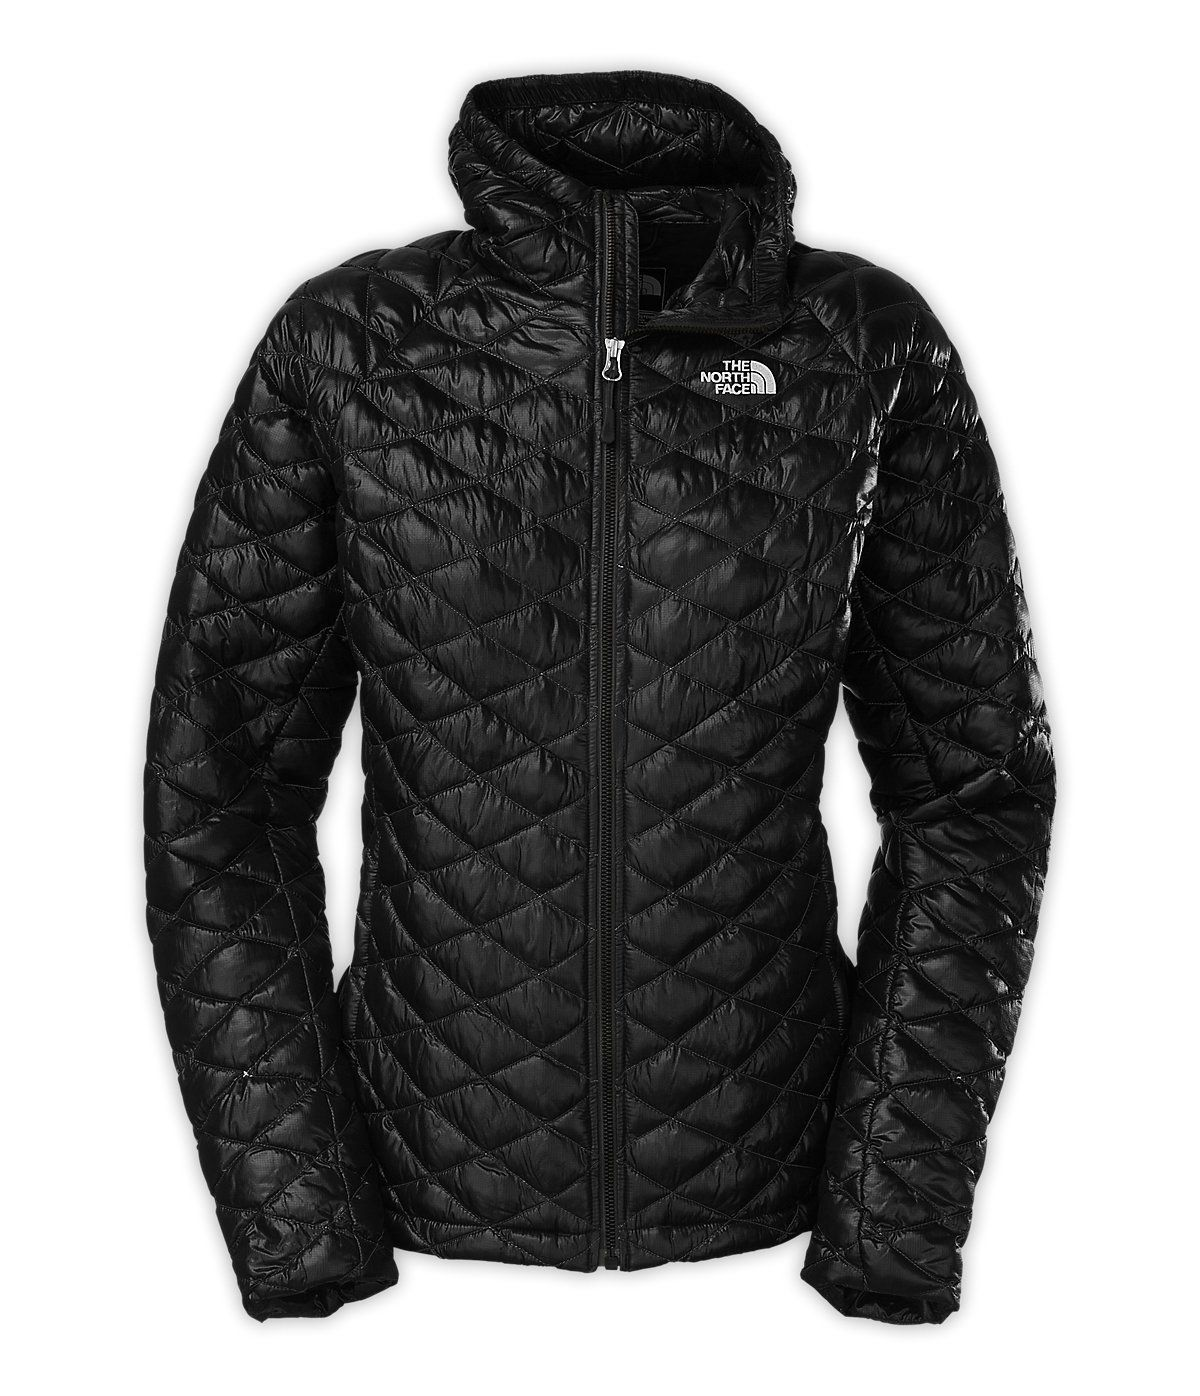 Amazon Com The North Face Thermoball Hoodie Women S Clothing Hoodie Jacket Women Hoodies Womens Womens Outdoor Clothing [ 1396 x 1200 Pixel ]